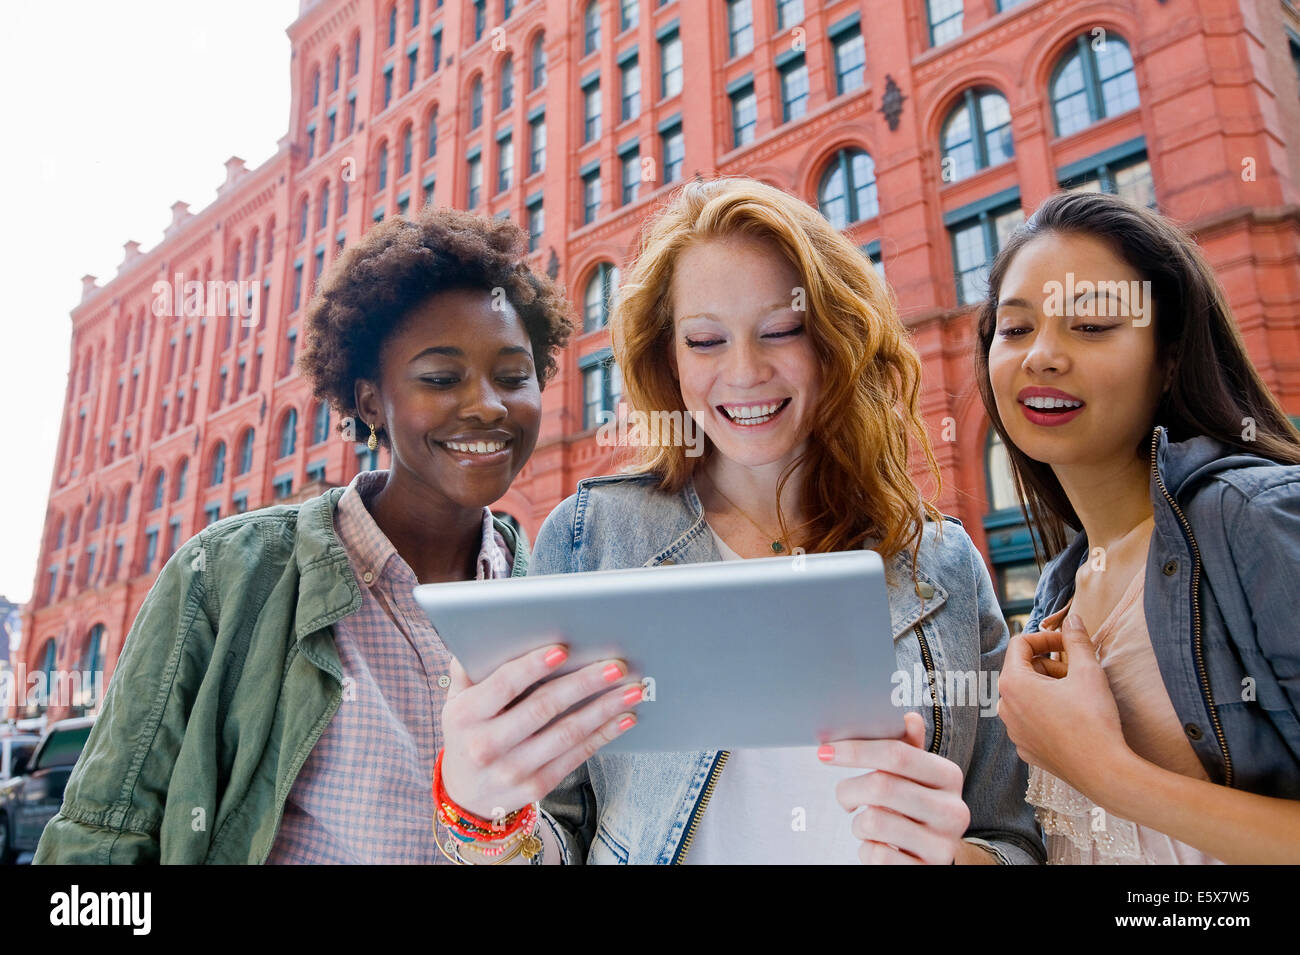 Three young women looking at digital tablet in street - Stock Image